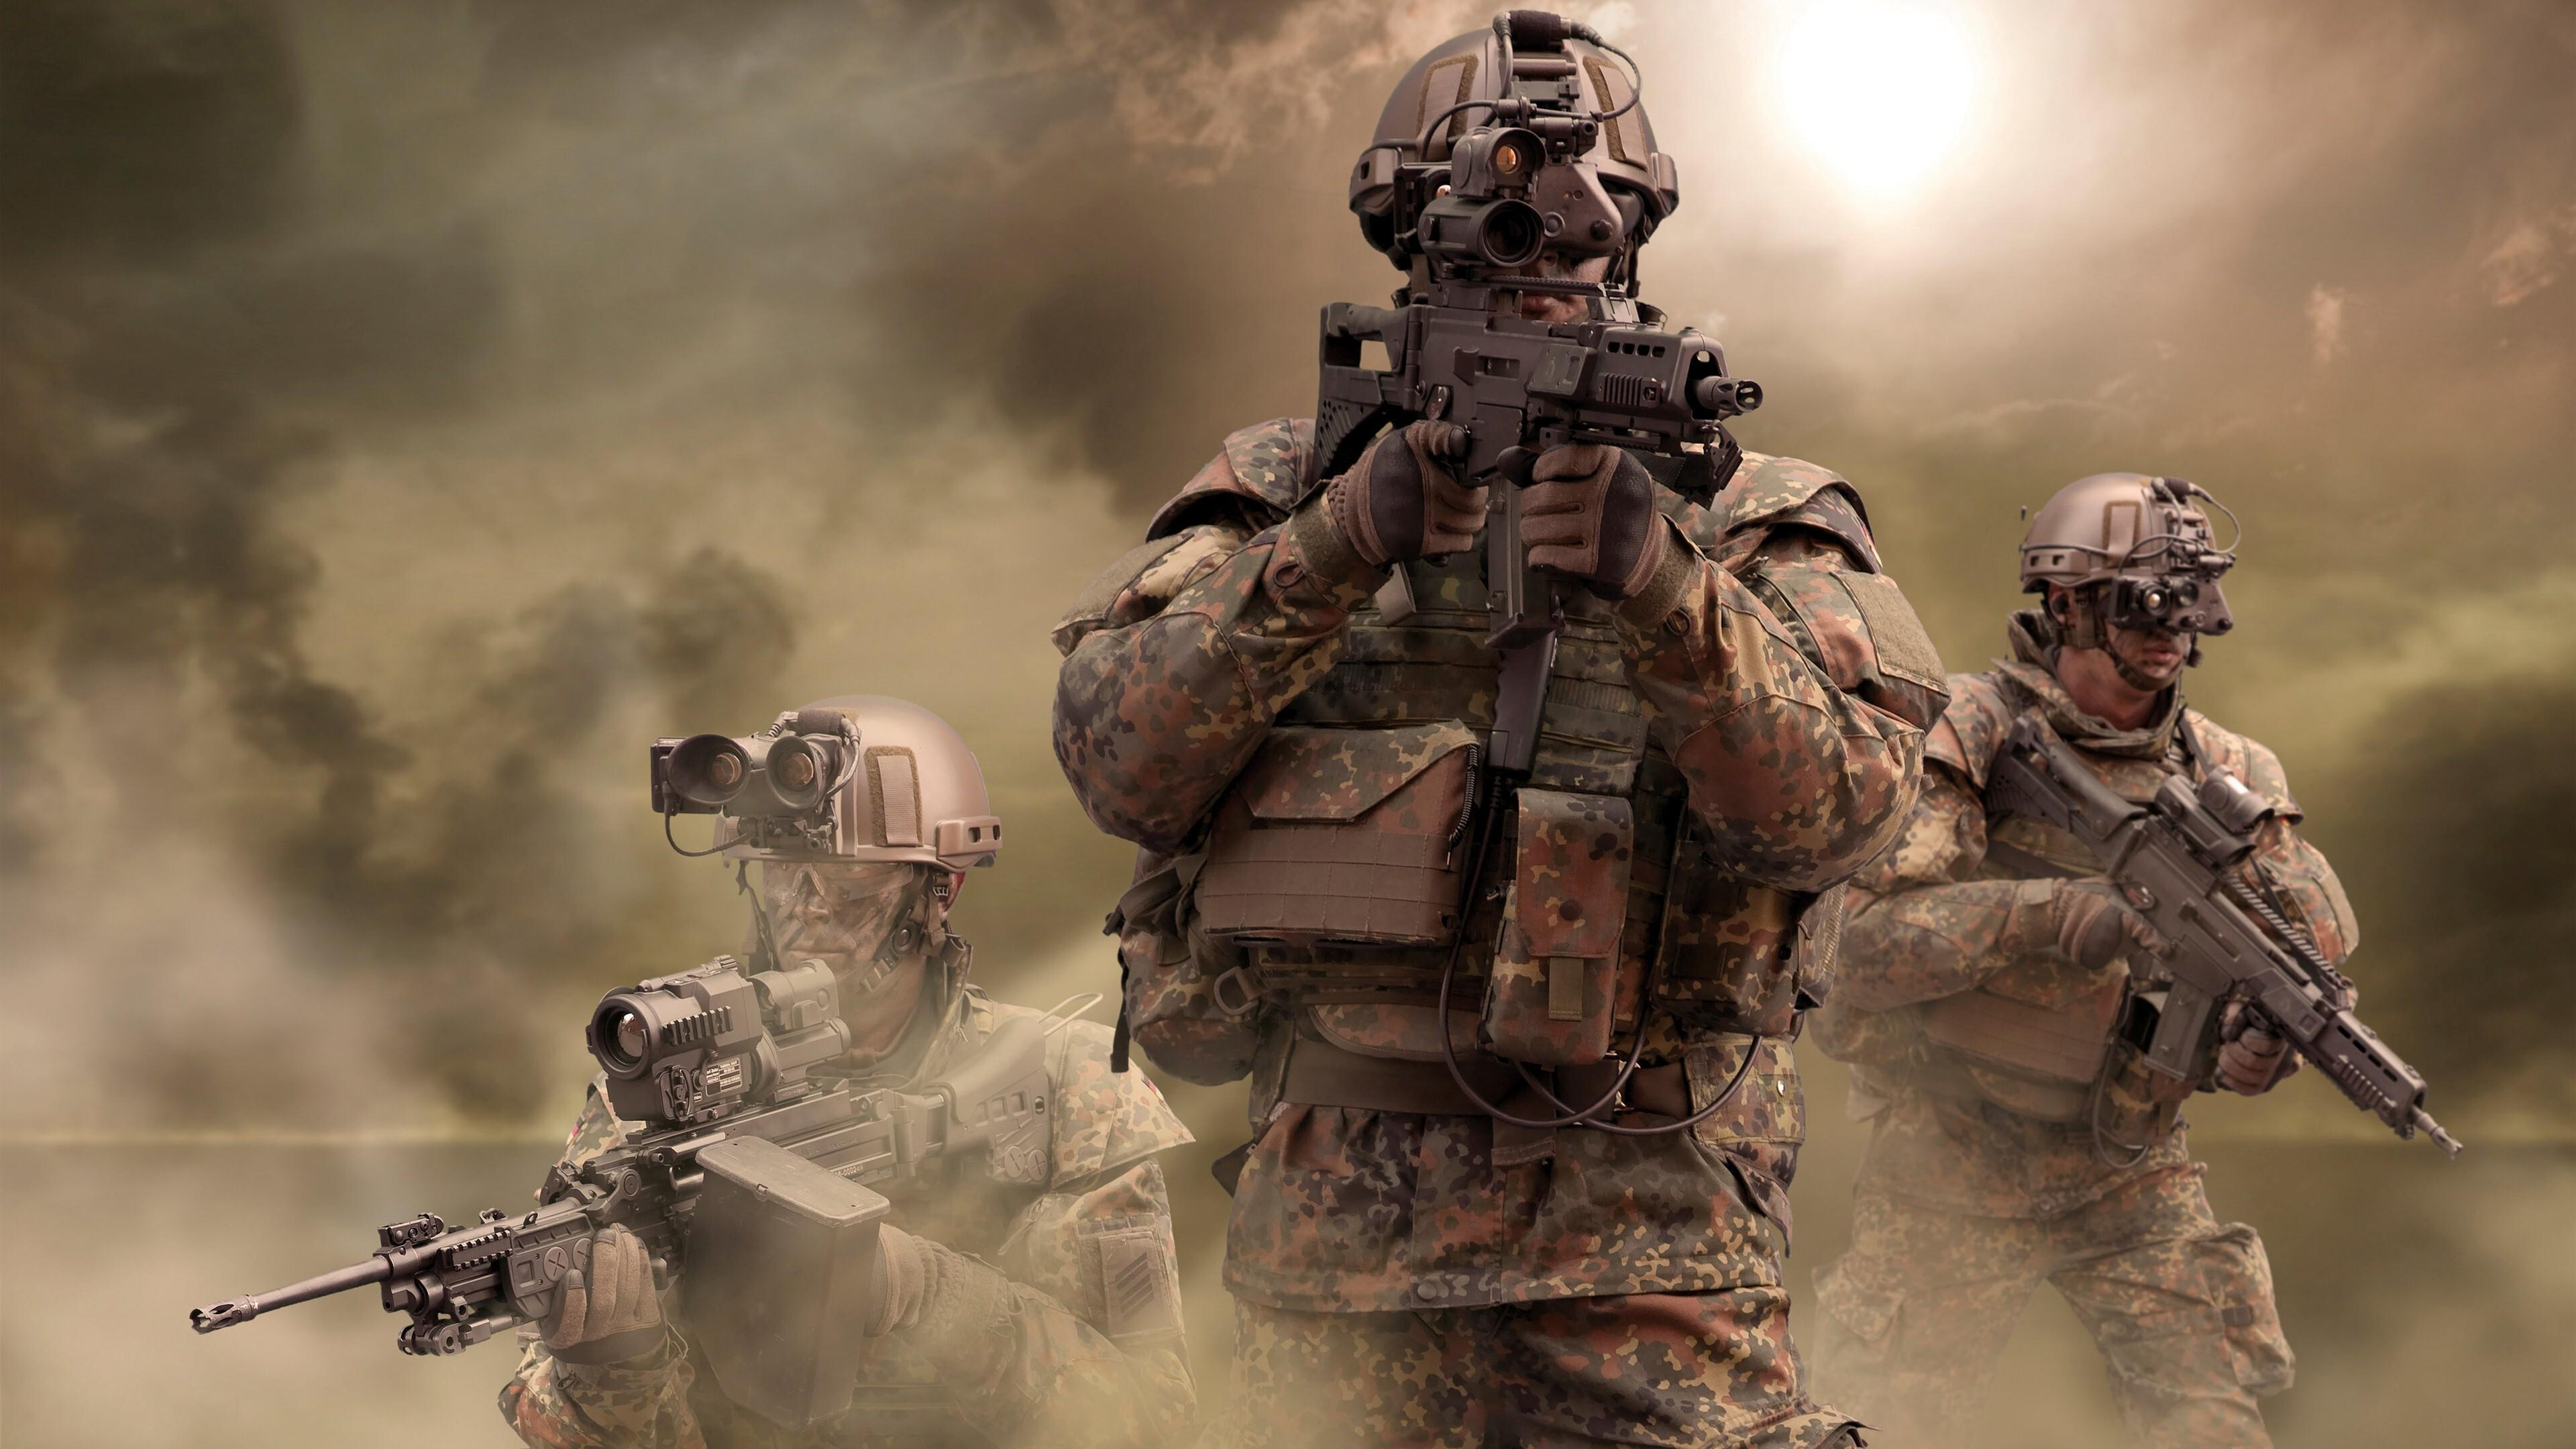 3840x2160 Army Soldier Background Wallpaper